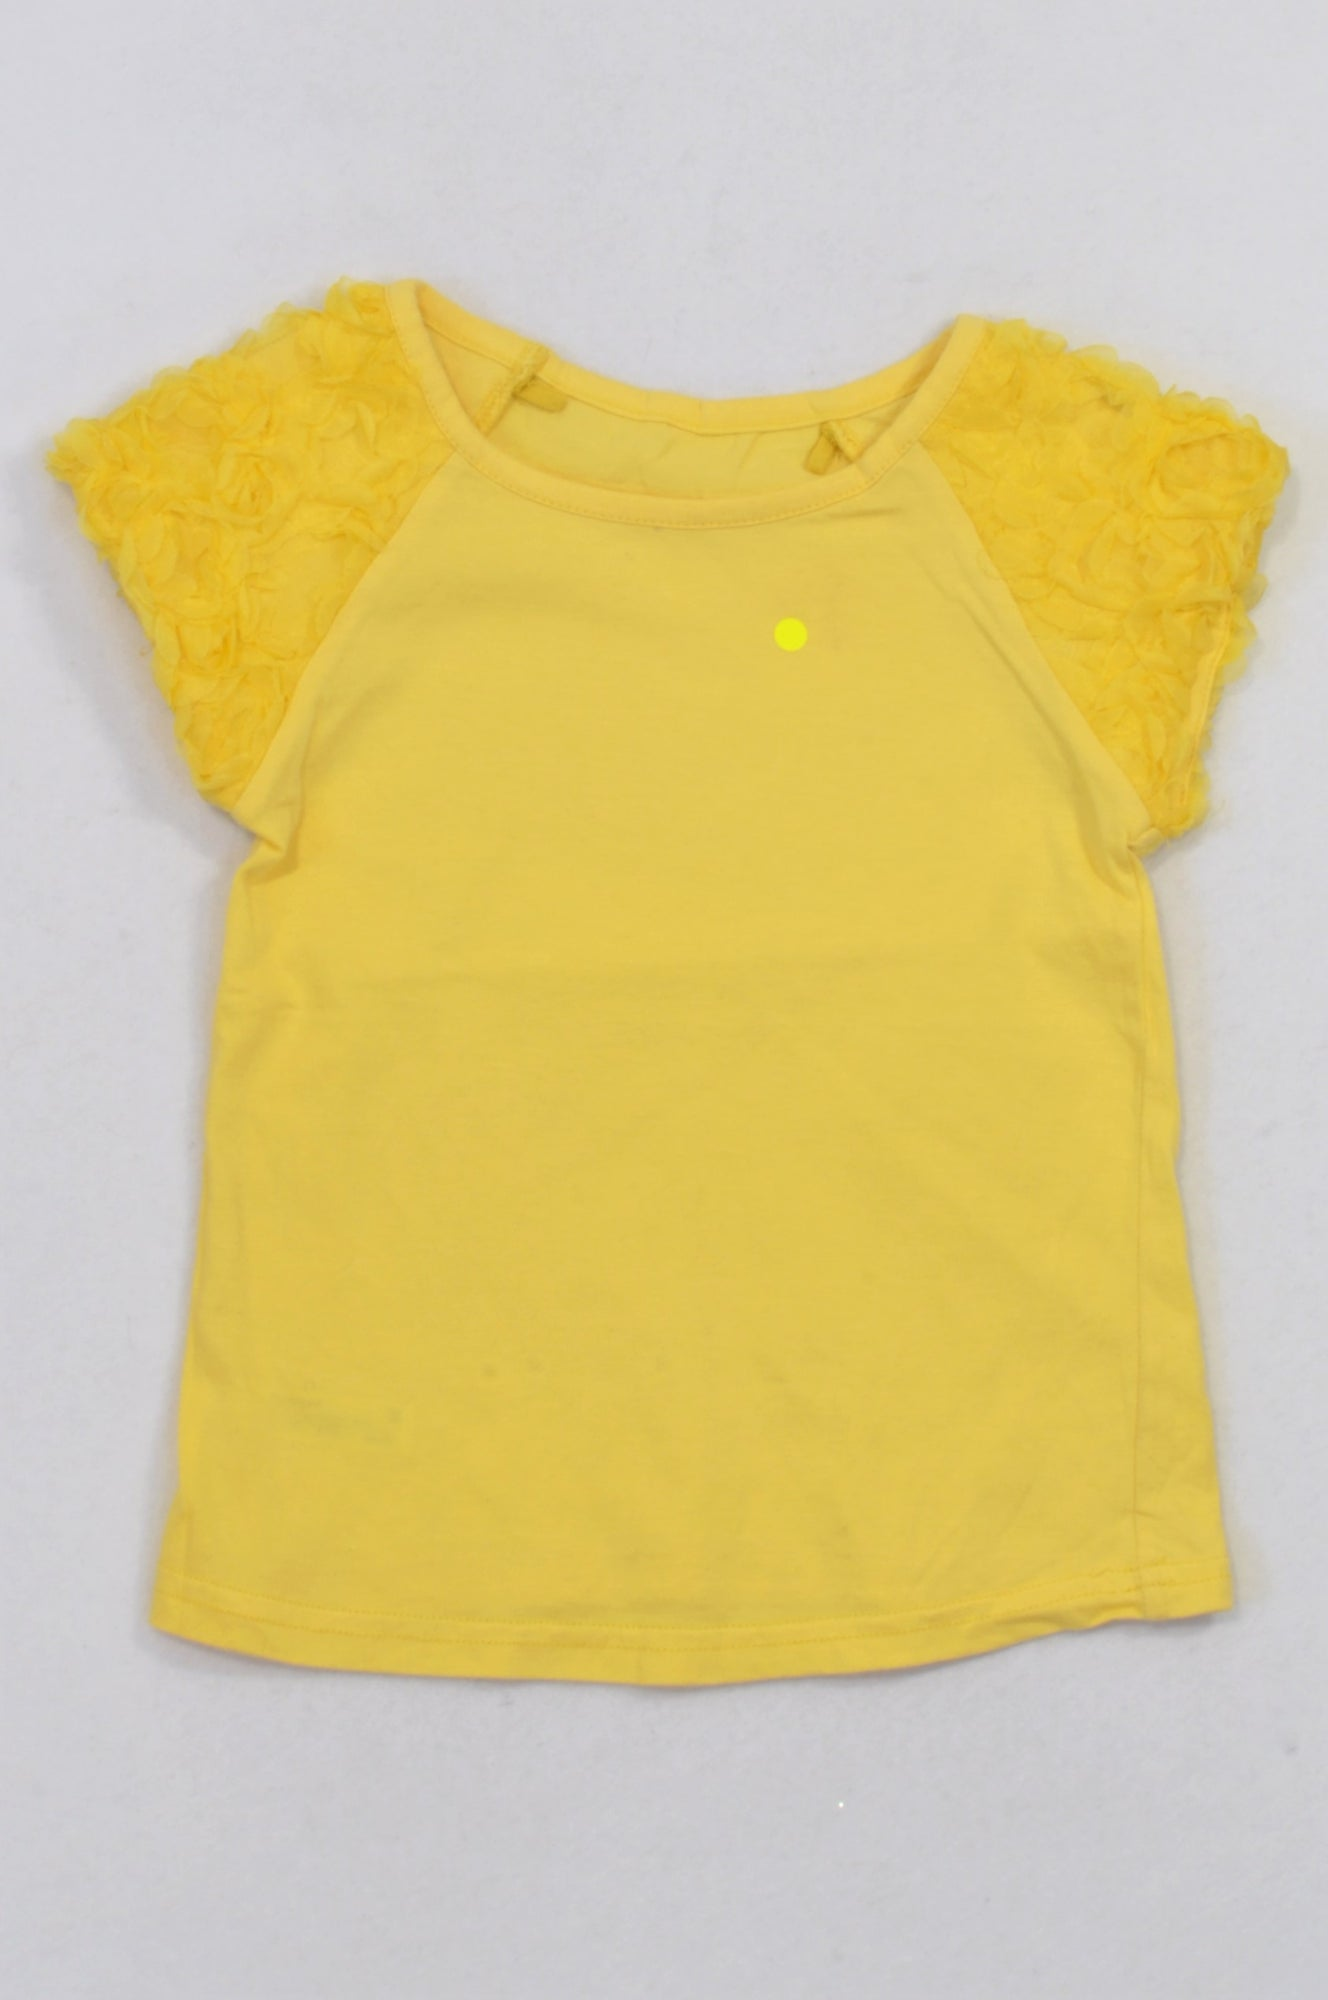 Woolworths Bright Yellow Flower Tulle Sleeve T Shirt Girls 5 6 Years